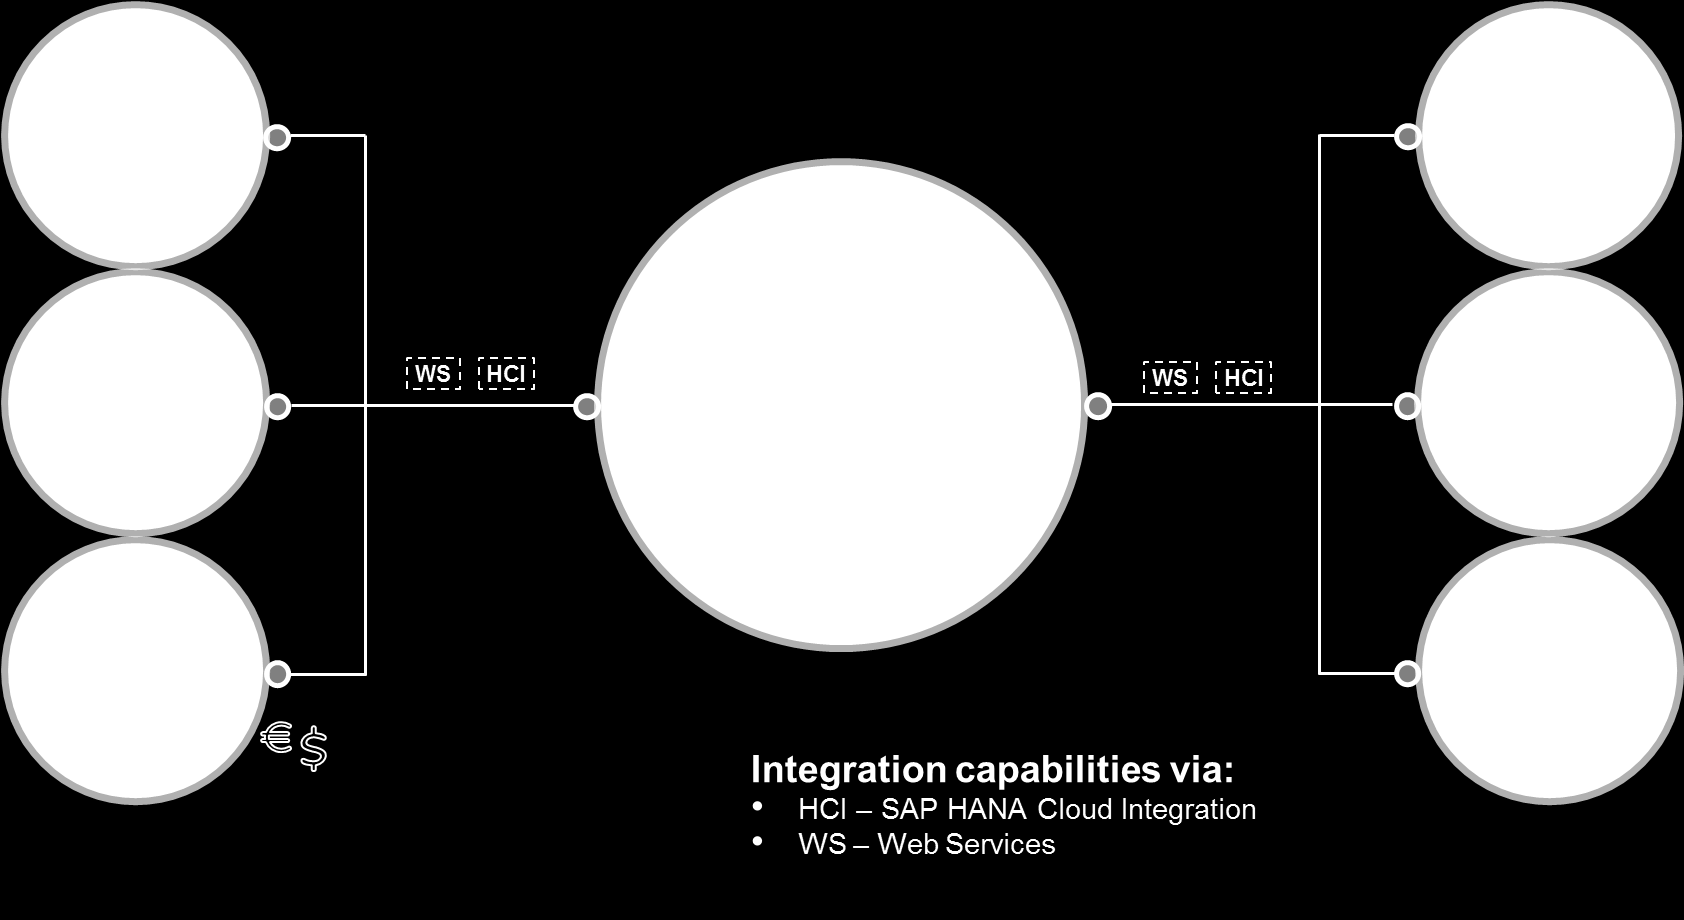 3 SAP S/4HANA, Cloud Edition Integration Other than the on premise edition, SAP S/4HANA, cloud edition is designed for enterprises that need standardized cloud integration offerings that cover the